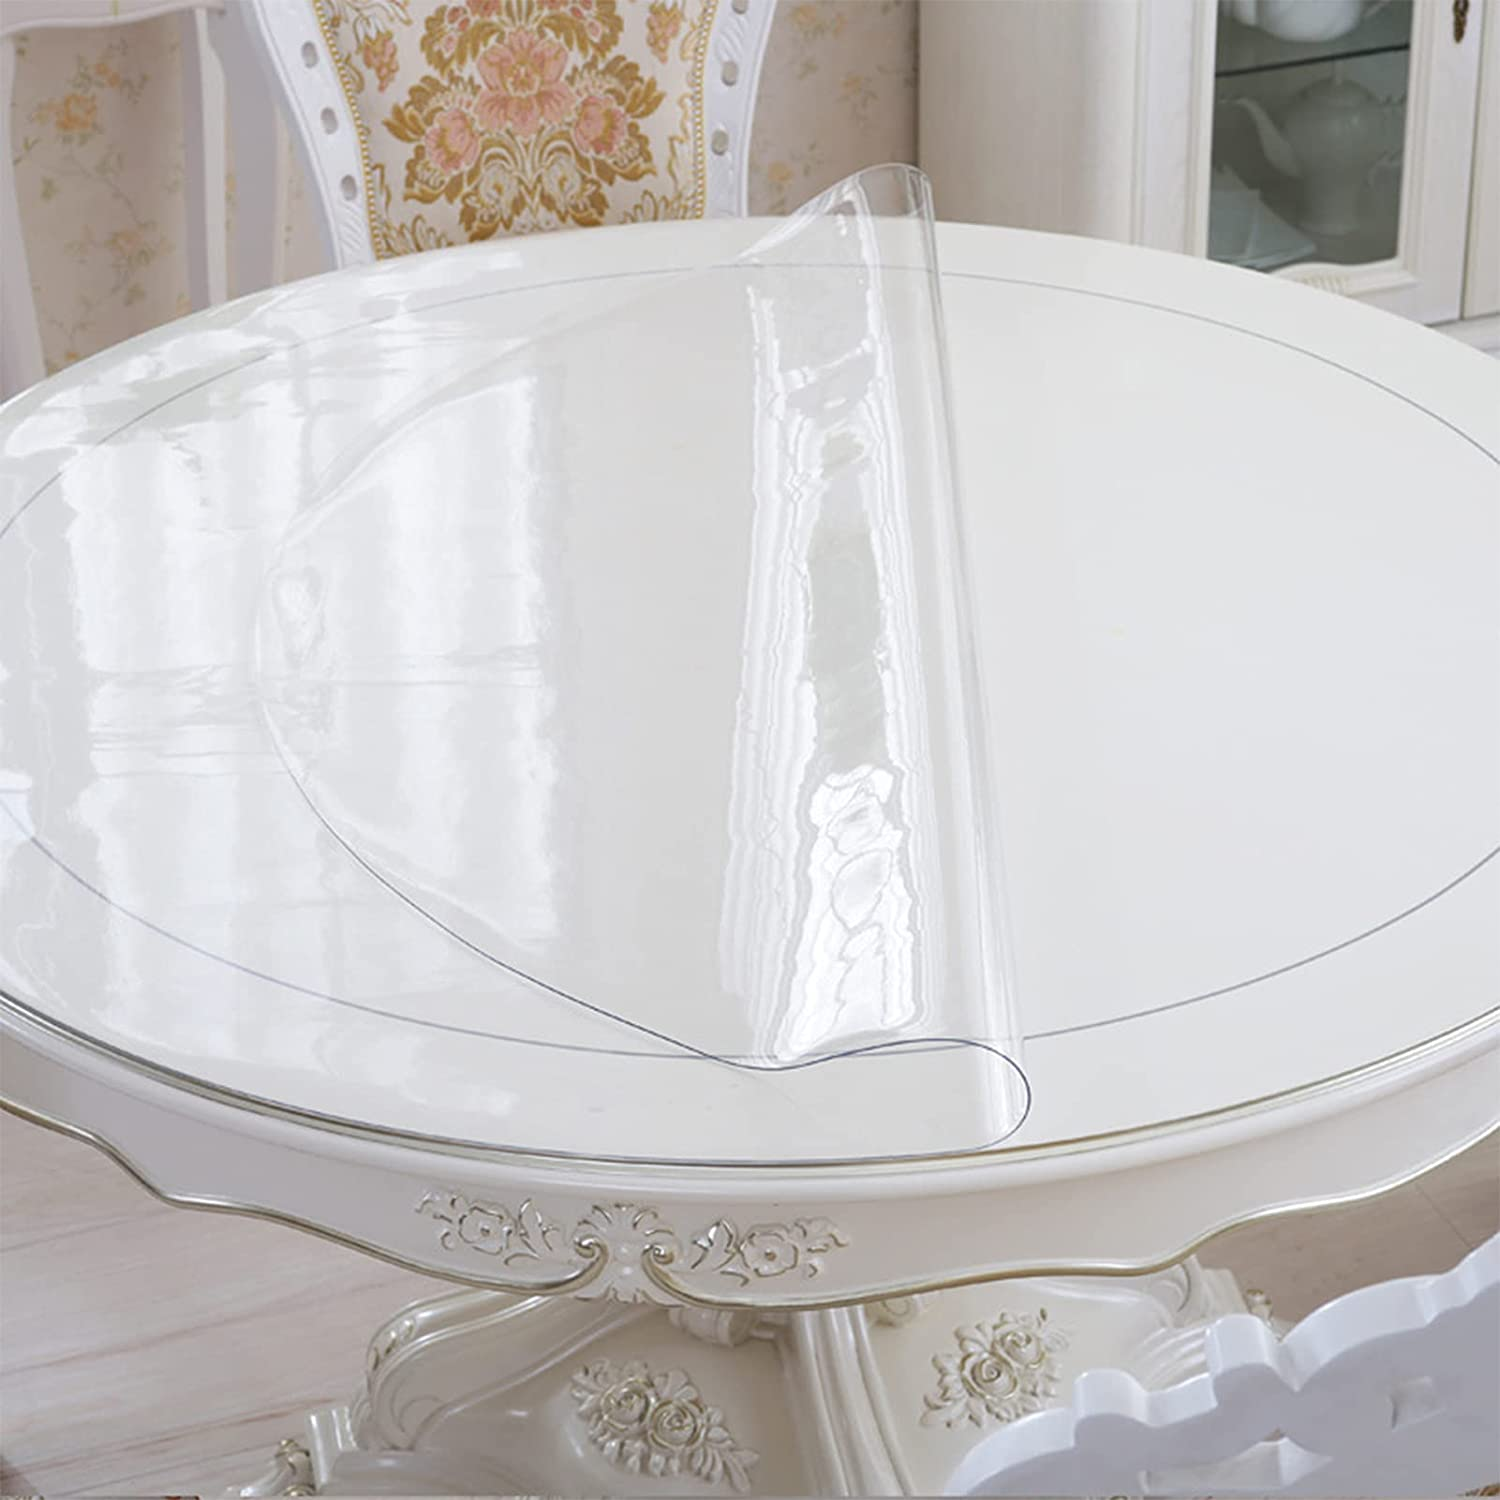 NBJT 1.5mm Round Max 66% OFF Clear Tablecloth PVC Table Soft Max 76% OFF Glass Transpare